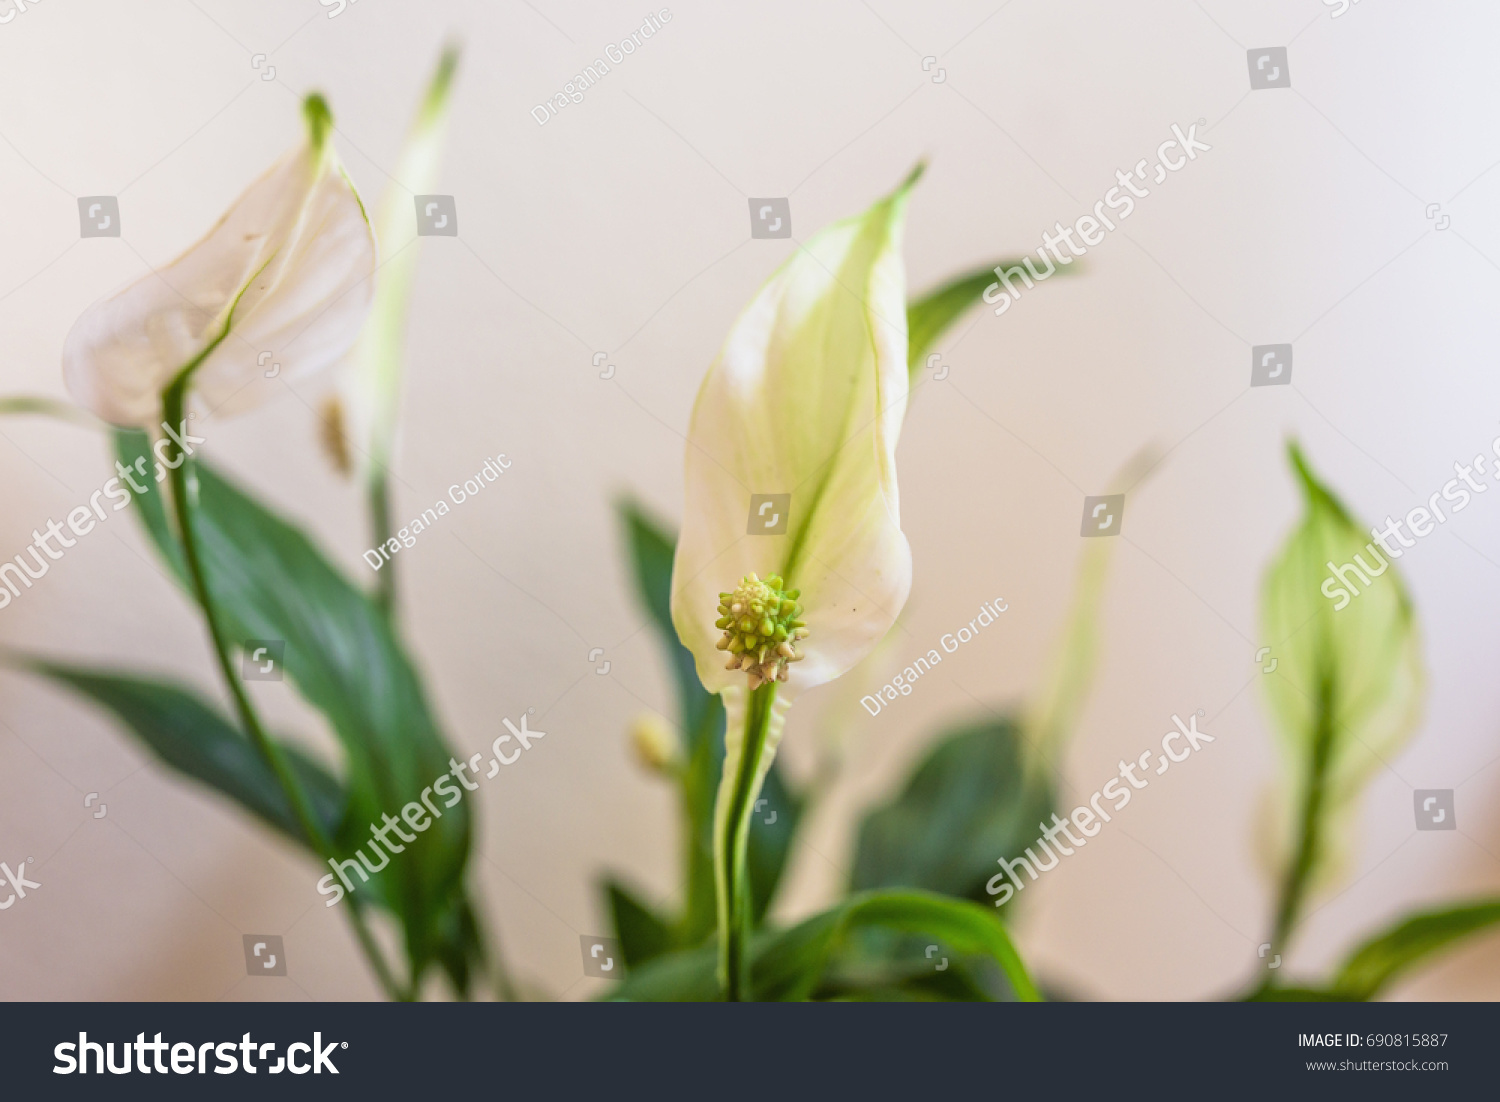 Houseplant Spathiphyllum Floribundum Peace Lily White Stock Photo